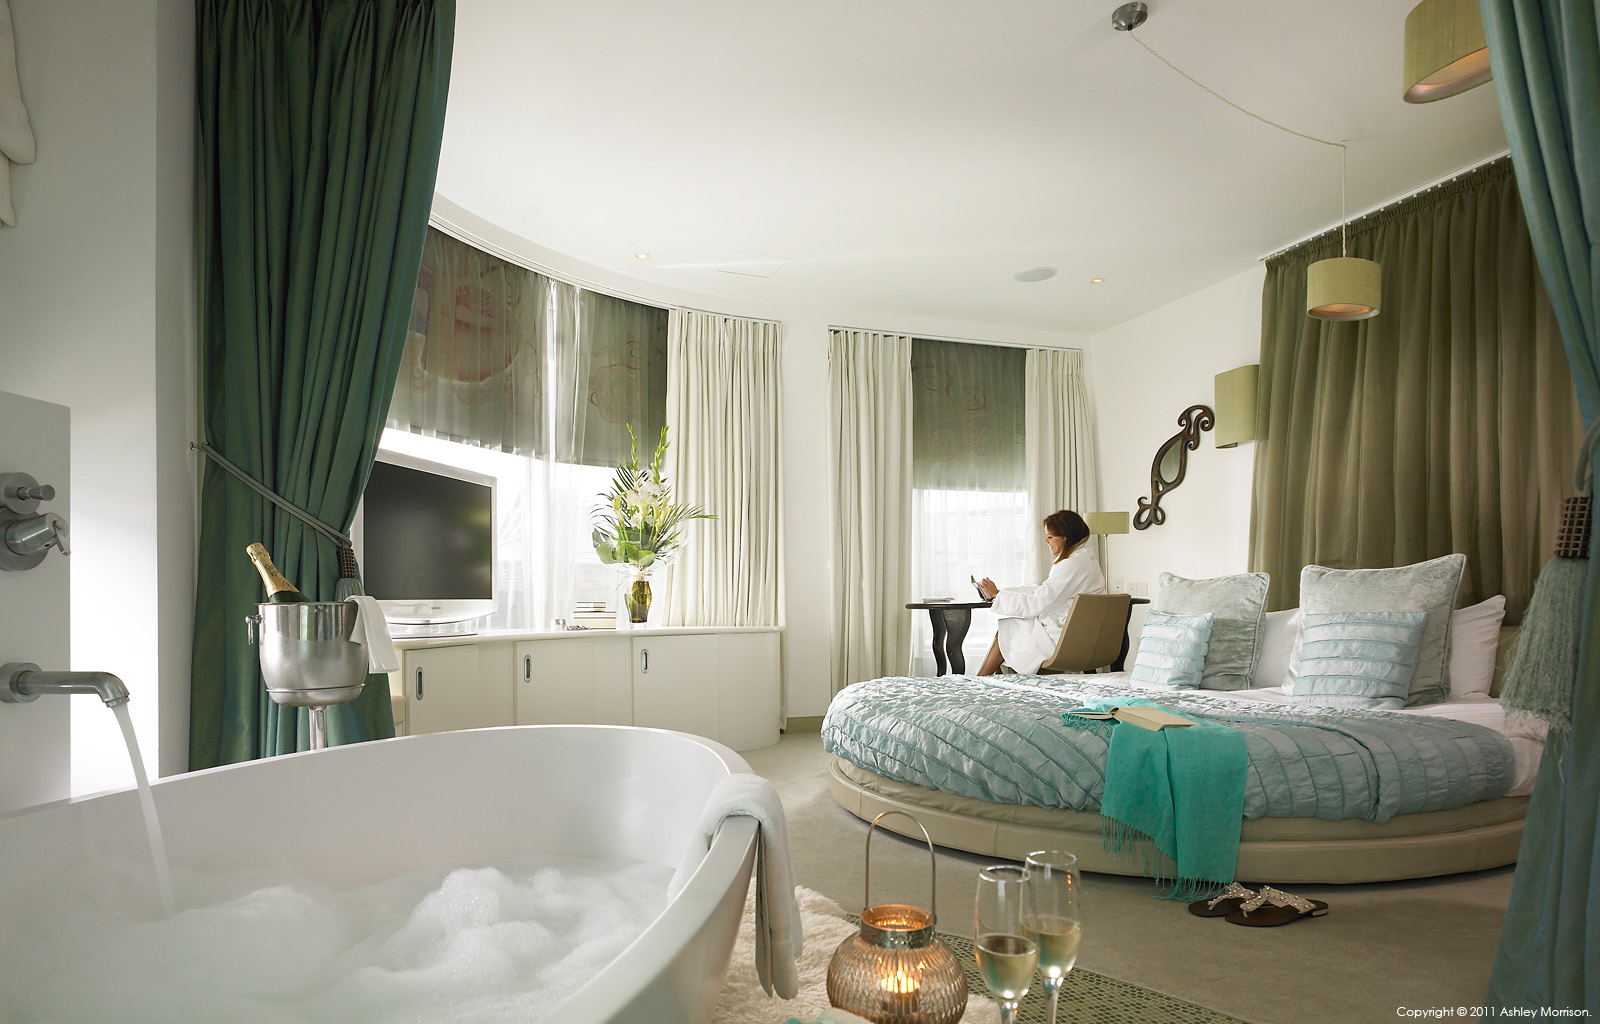 The Jade studio bedroom suite in My Hotels Brighton by Ashley Morrison.